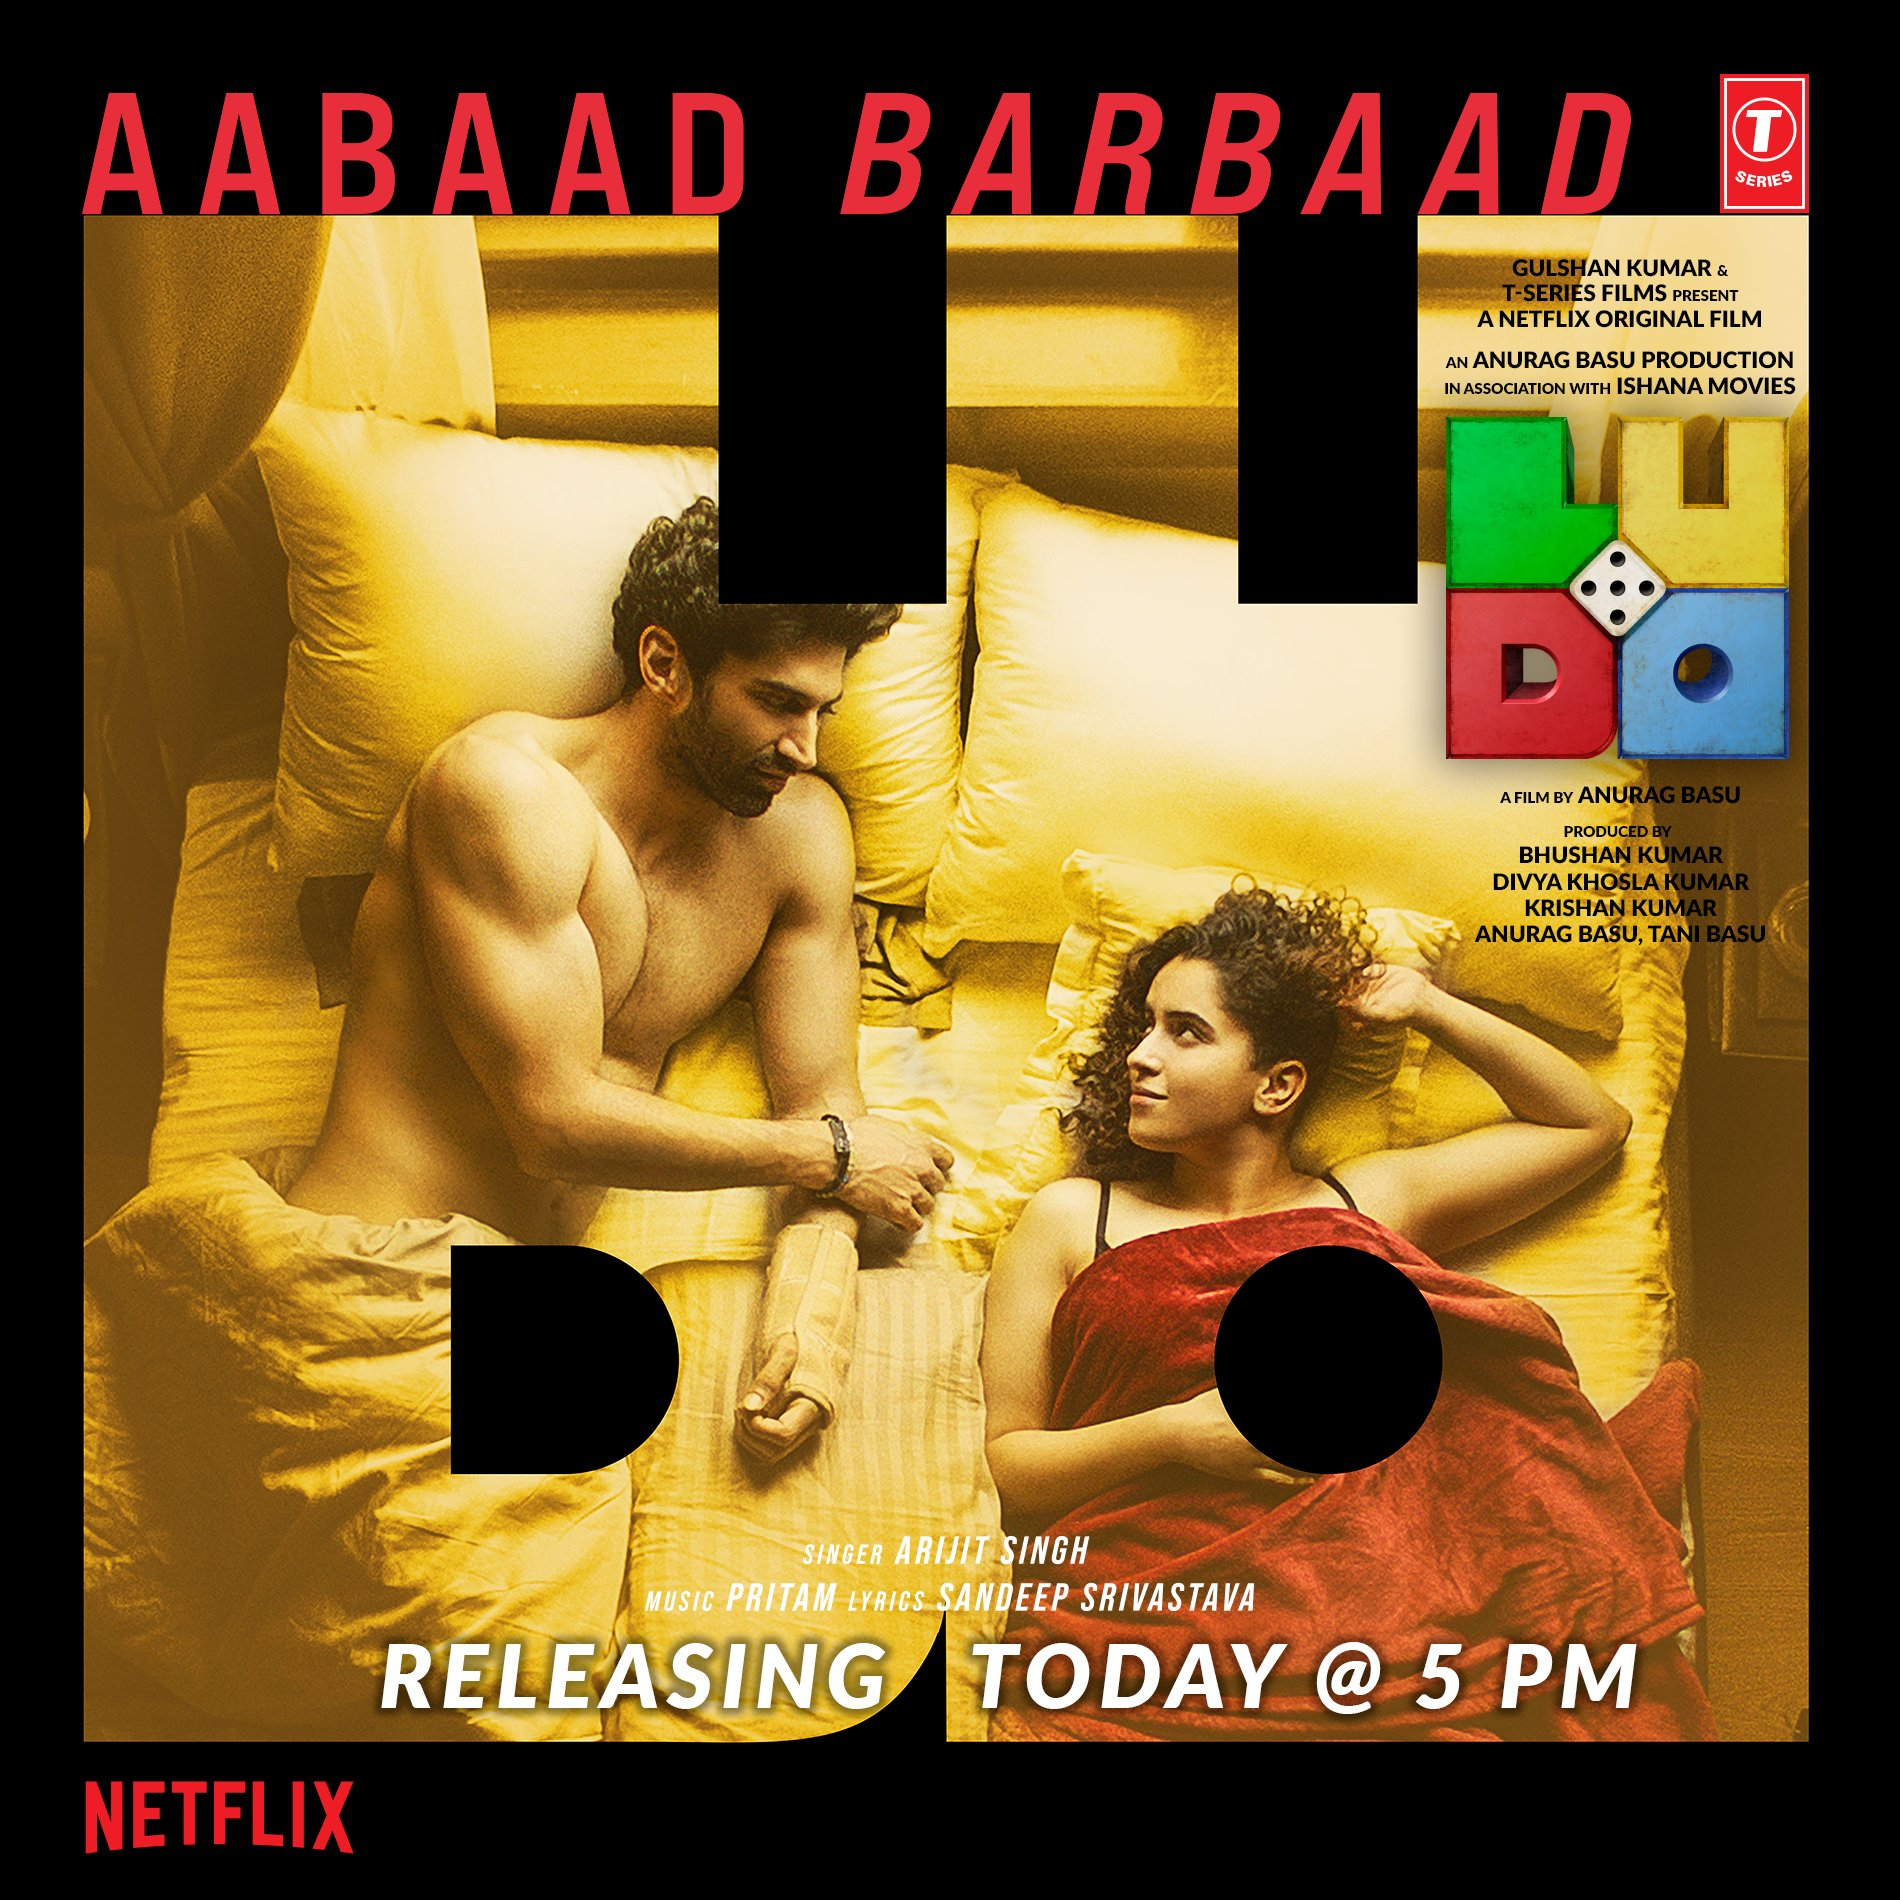 Aabaad Barbaad (Ludo 2020) By Arijit Singh Hindi Video Song 1080p HDRip Free Download